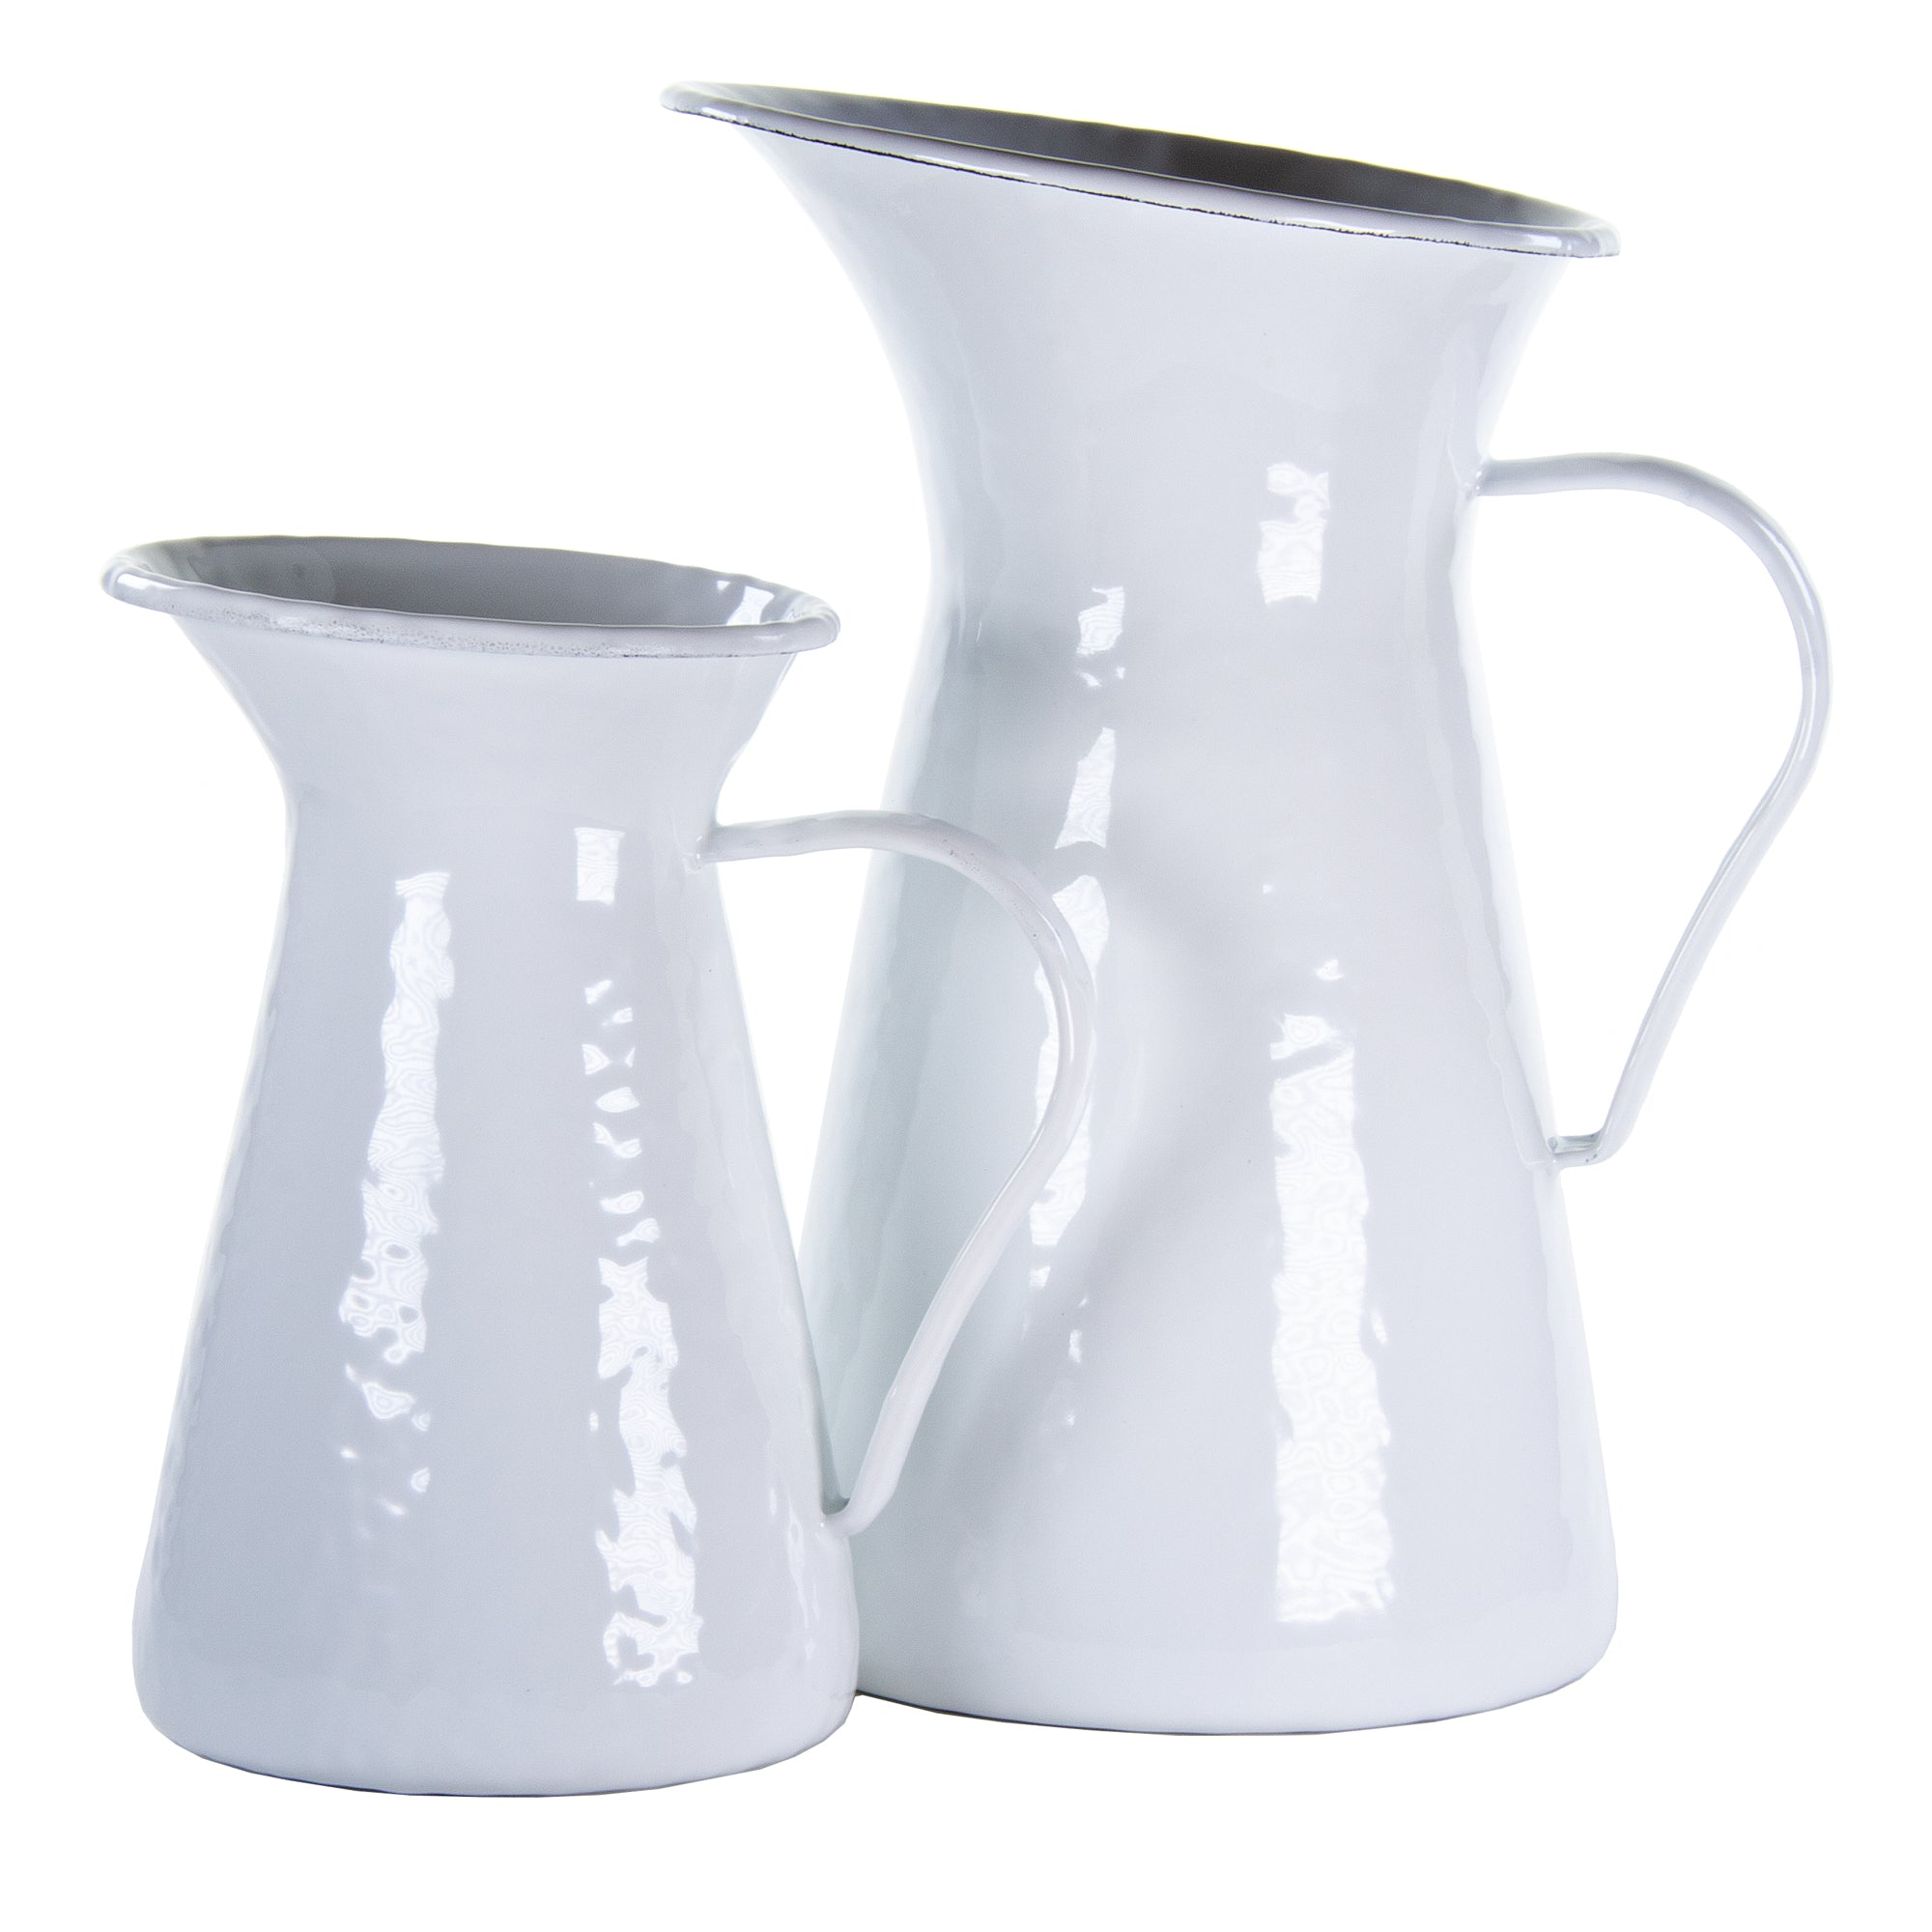 WW63 - Solid White Medium Pitcher Image 2